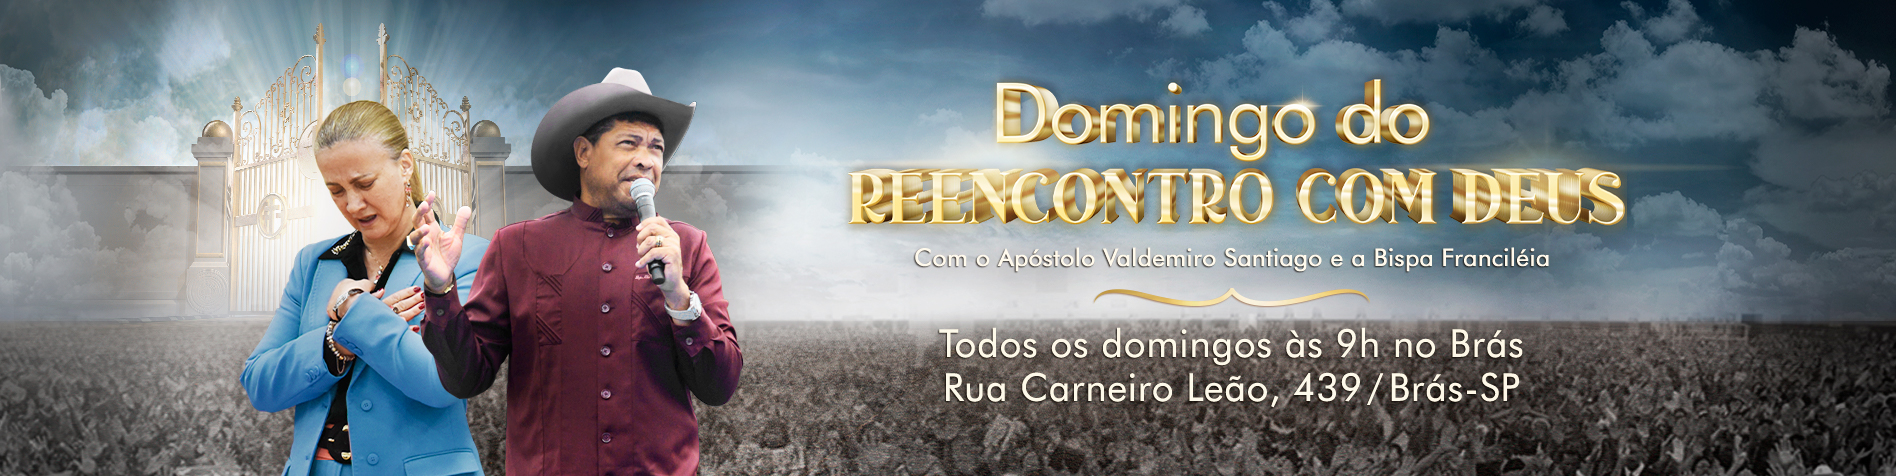 Domingo dos Benditos de Deus